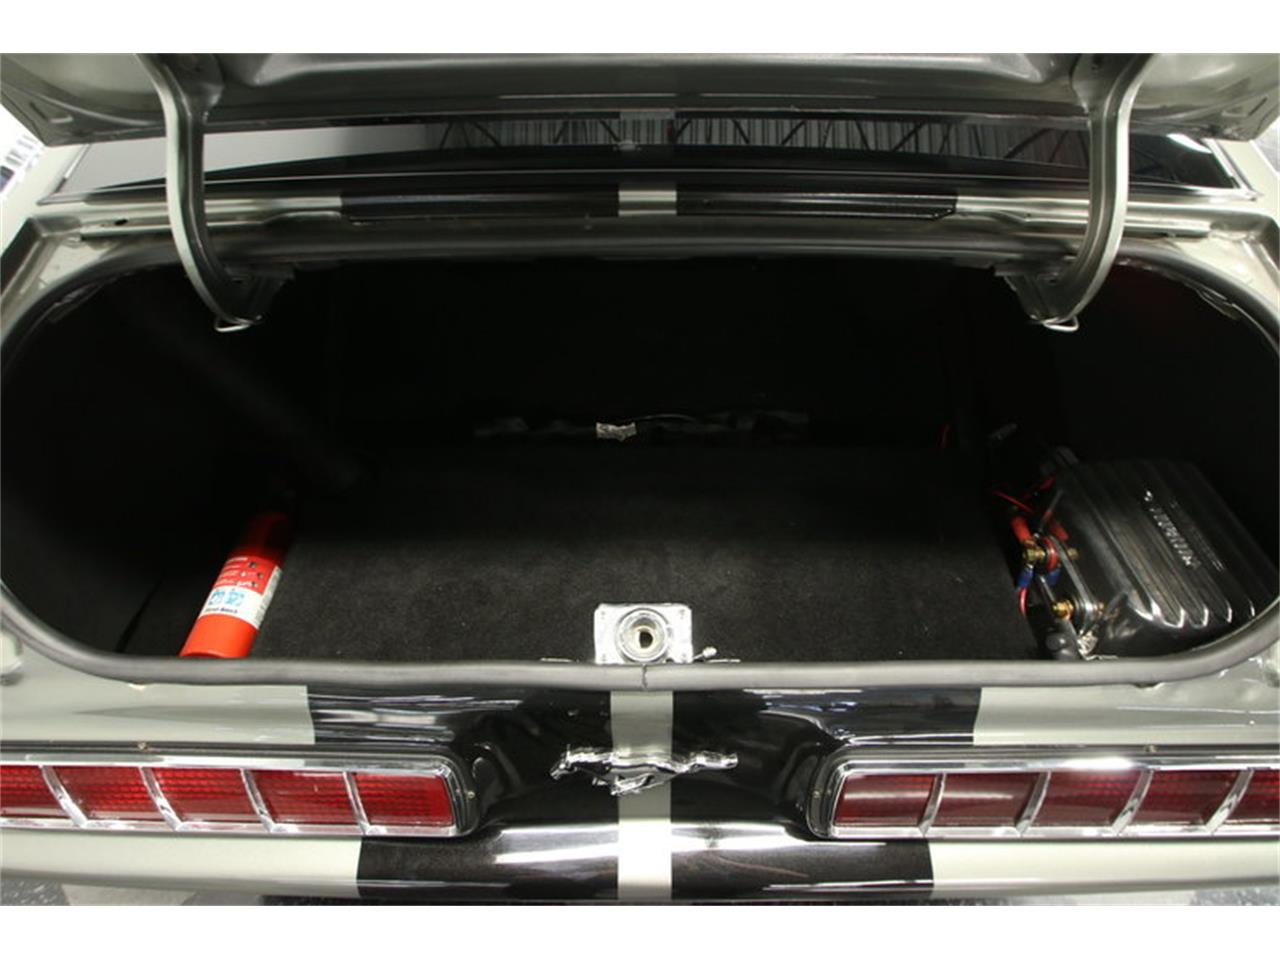 Large Picture of Classic 1971 Ford Mustang Fastback Restomod located in Florida - $99,995.00 - MGHW